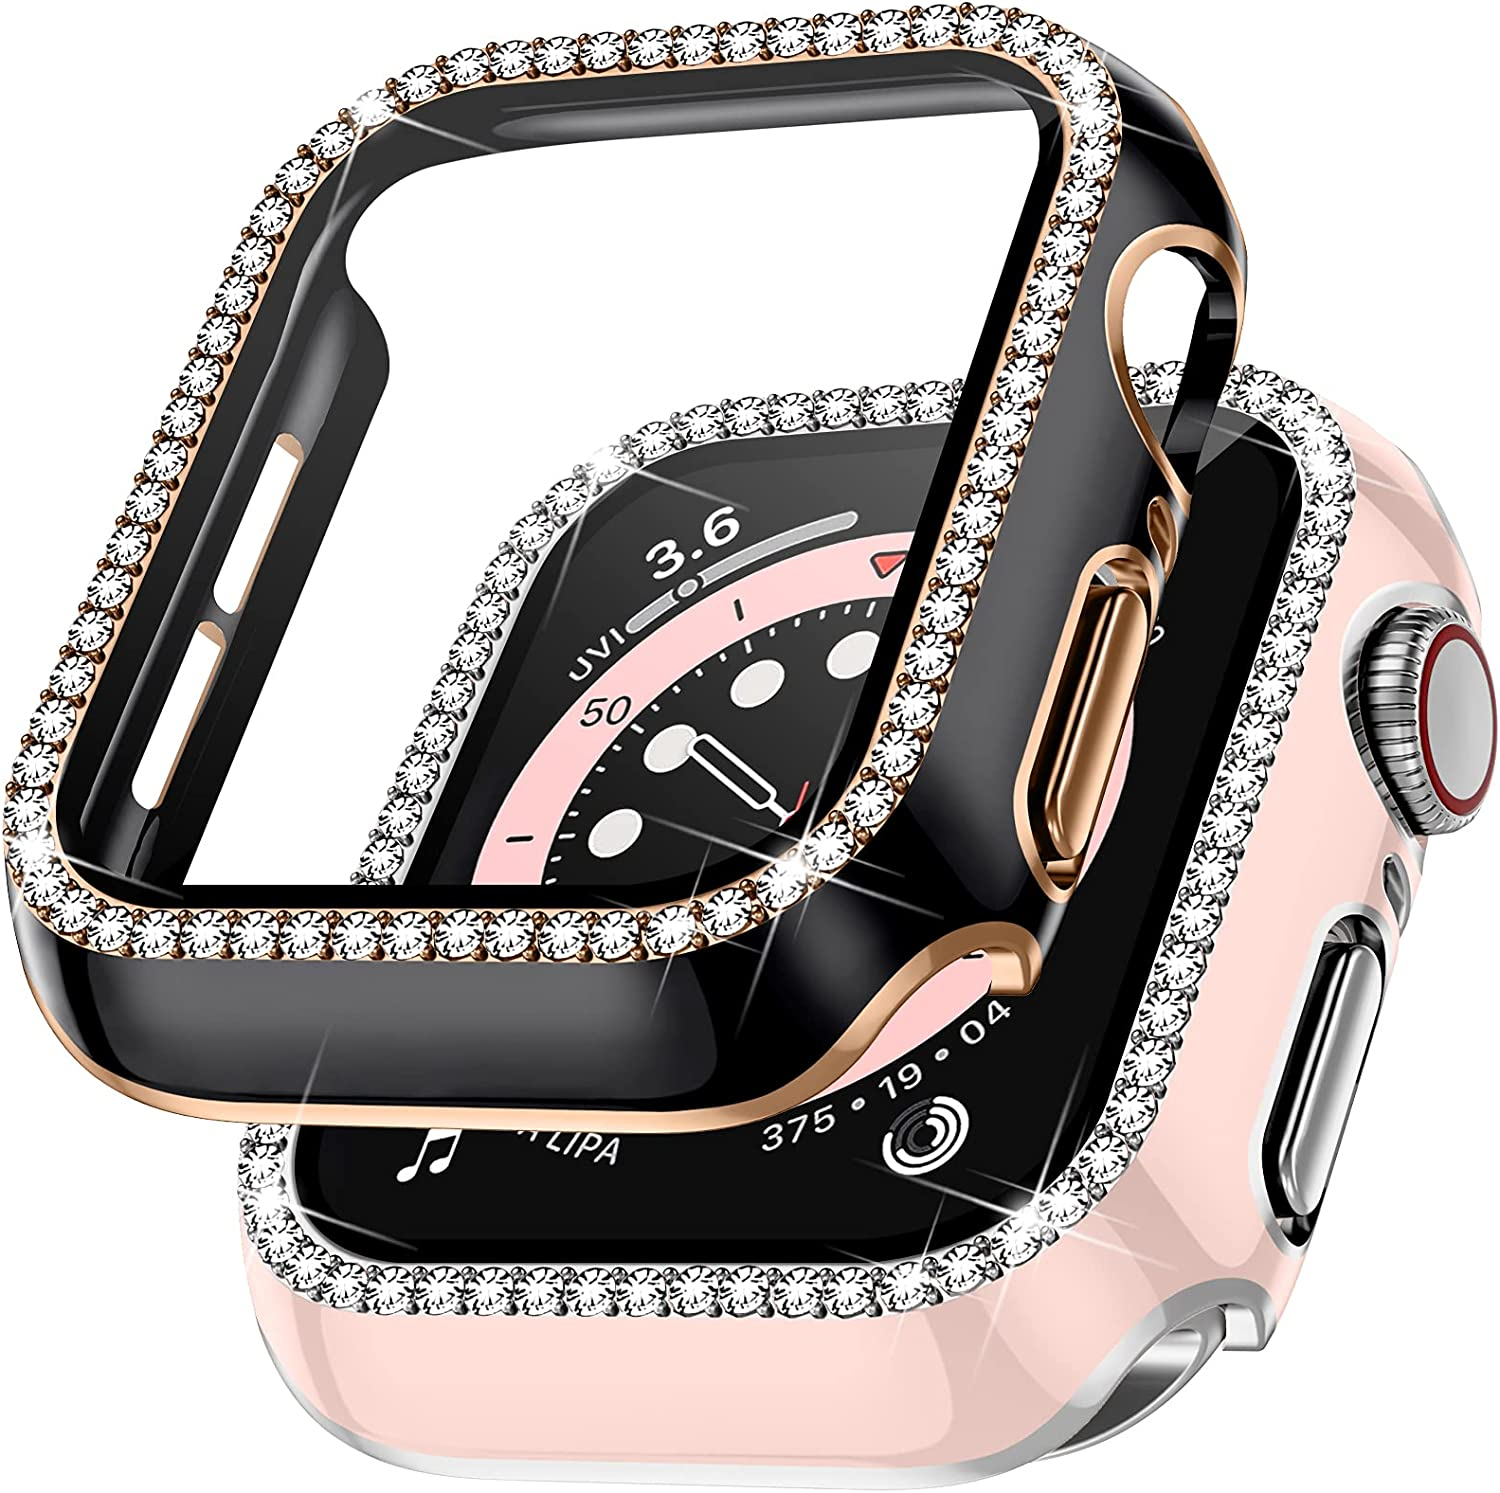 Charlam Compatible with Apple Watch Case 40mm SE iWatch Series 6/5/4, 2 Pack Full Coverage Bumper Bling Diamond Crystal Rhinestone Hard PC Protective Case Cover for Women Girls (Black/Pink 40mm)